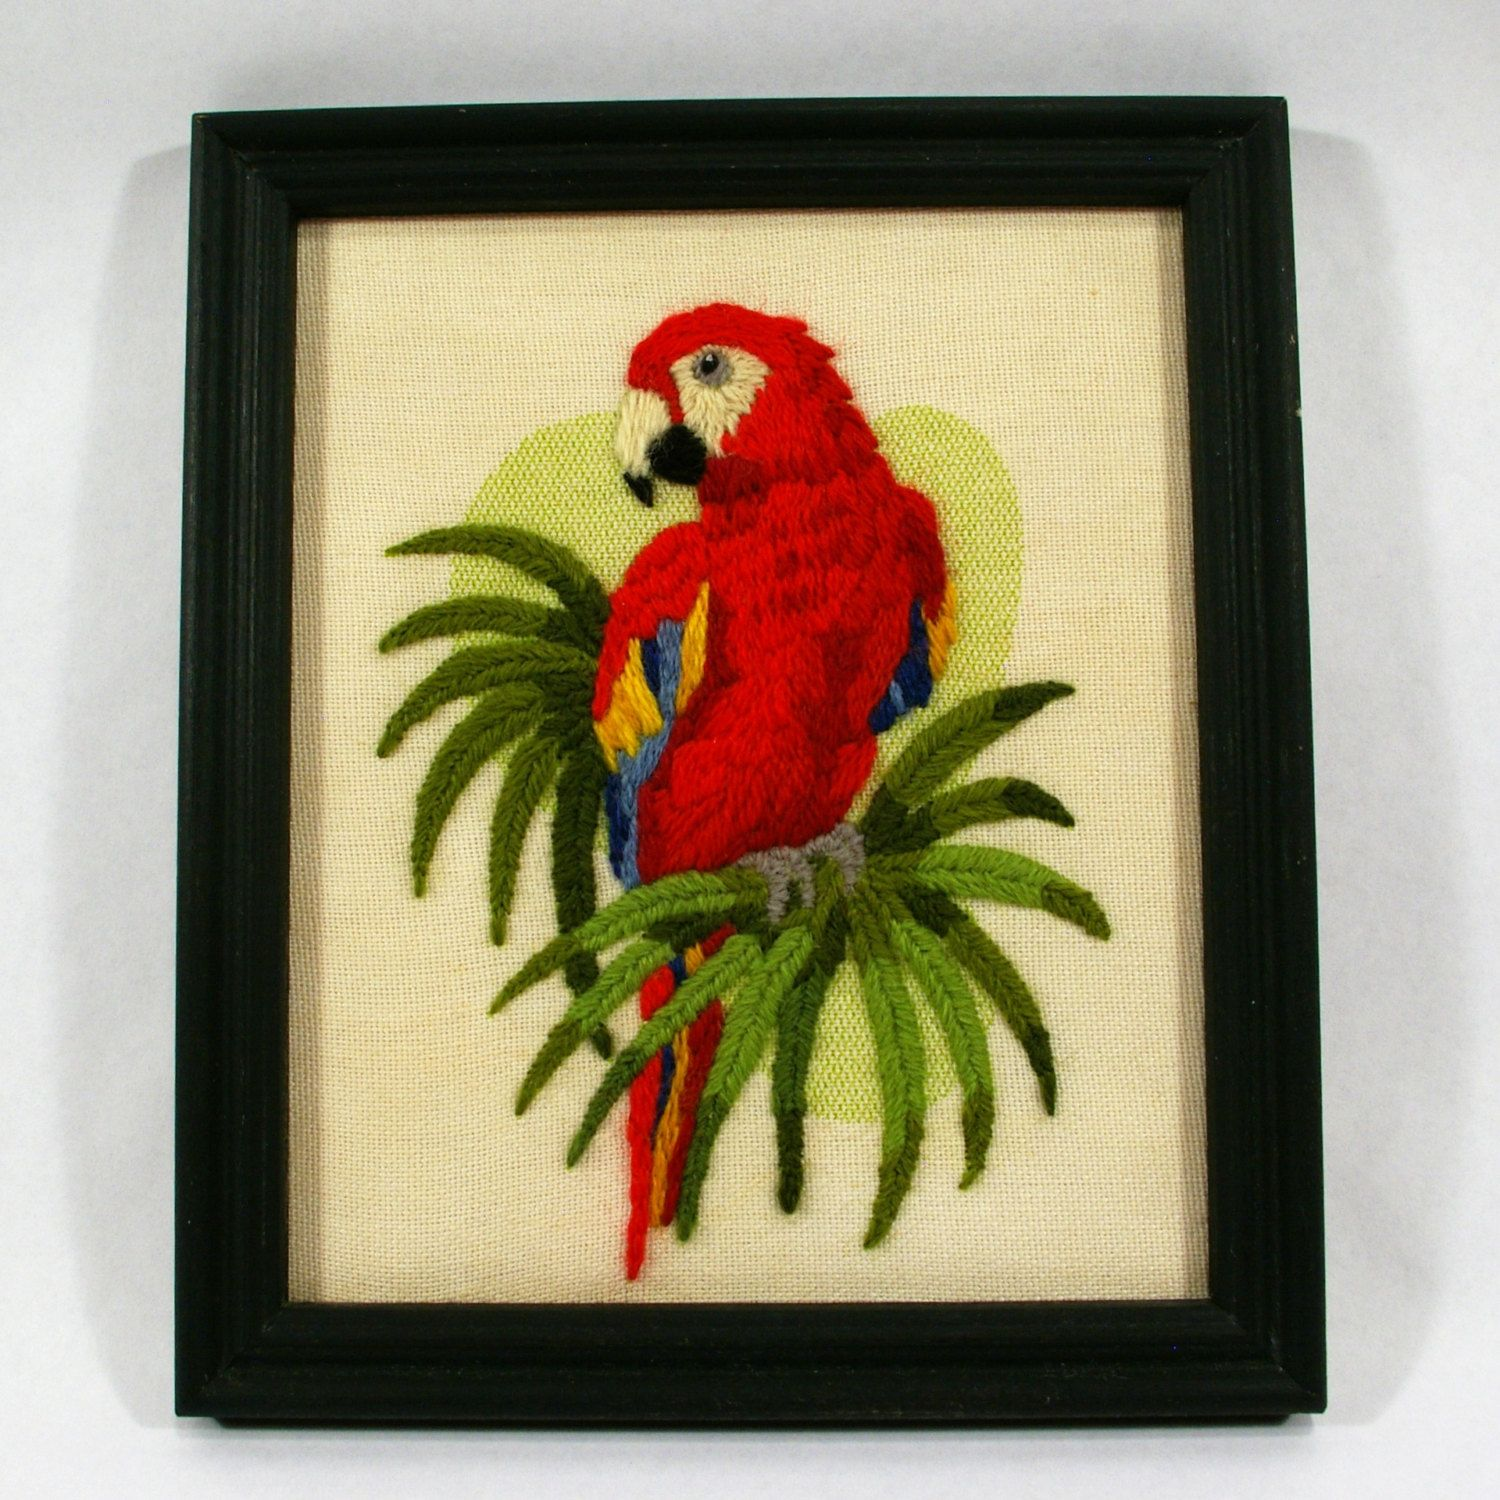 Tiki Parrot Picture, Vintage Embroidered Art, Tropical Macaw Parrot ...